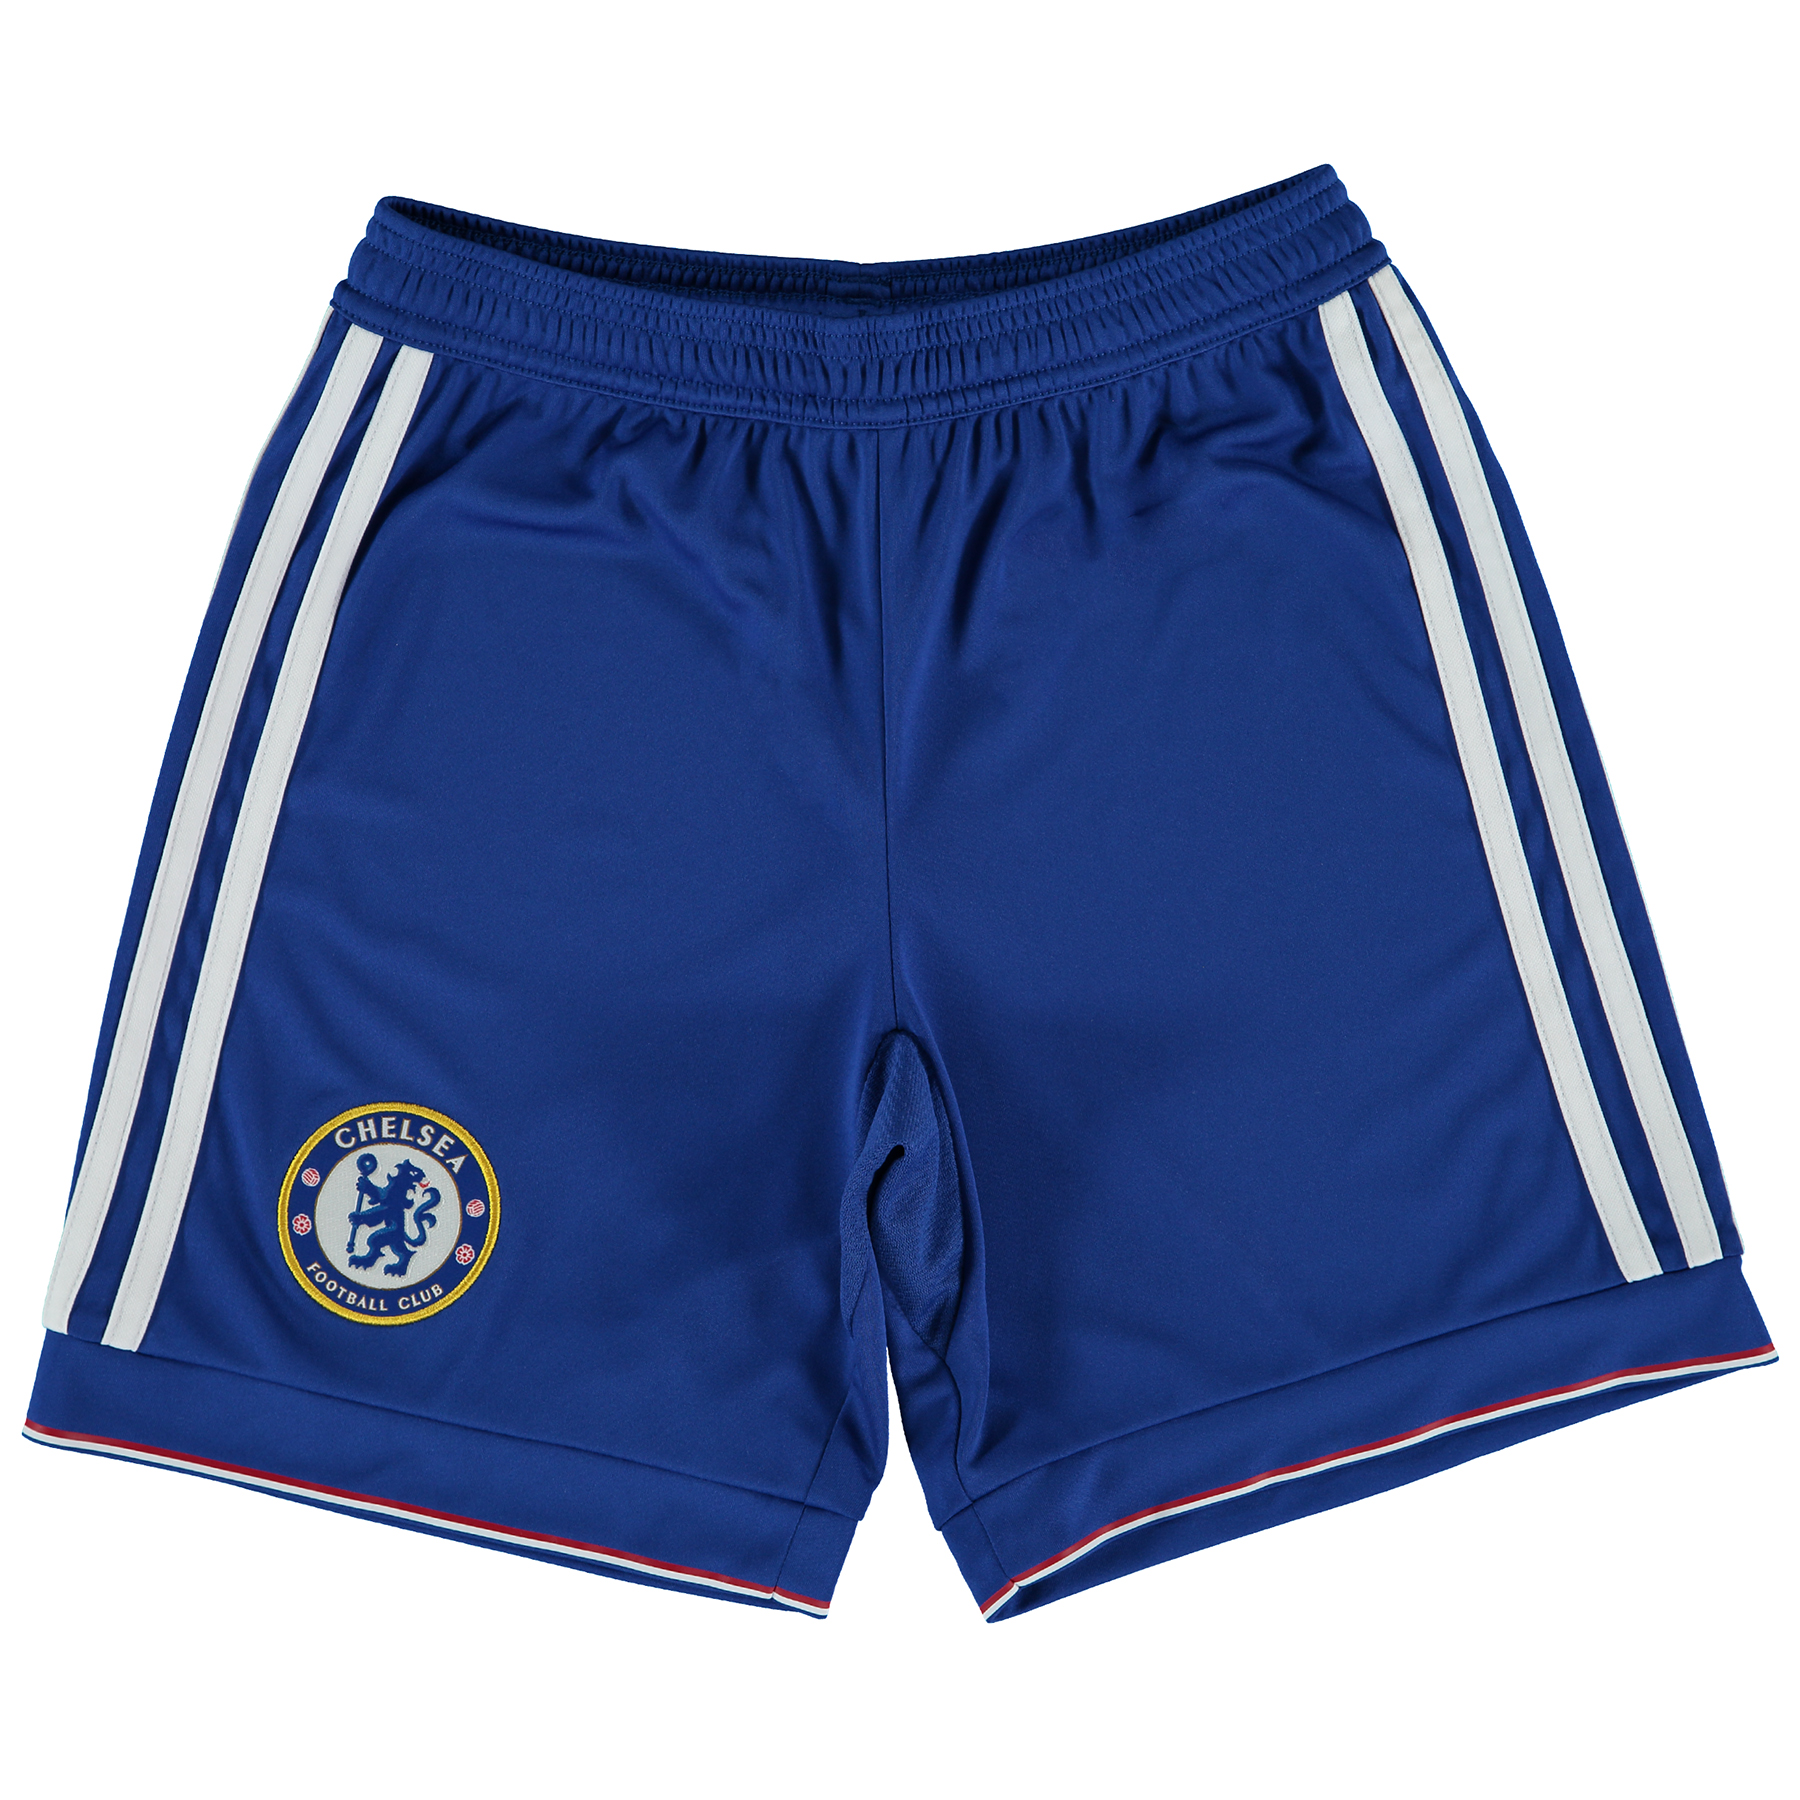 Chelsea Home Shorts 2015/16 Show your support for your favourite club with the new Chelsea Home Shorts 2015/16. Develop your footwork in the Blues' style with these men's football shorts. Showing Chelsea's team badge above the right hem, they feature climacool® ventilation that helps keep you cool and dry. Join the likes of Champions Diego Costa, Cesc Fabregas and Eden Hazard and order your new Chelsea shorts today! Benefits CLIMACOOL® Provides heat and moisture management through ventilation Club crest: woven badge Without inner mesh brief 100% rec. Polyester